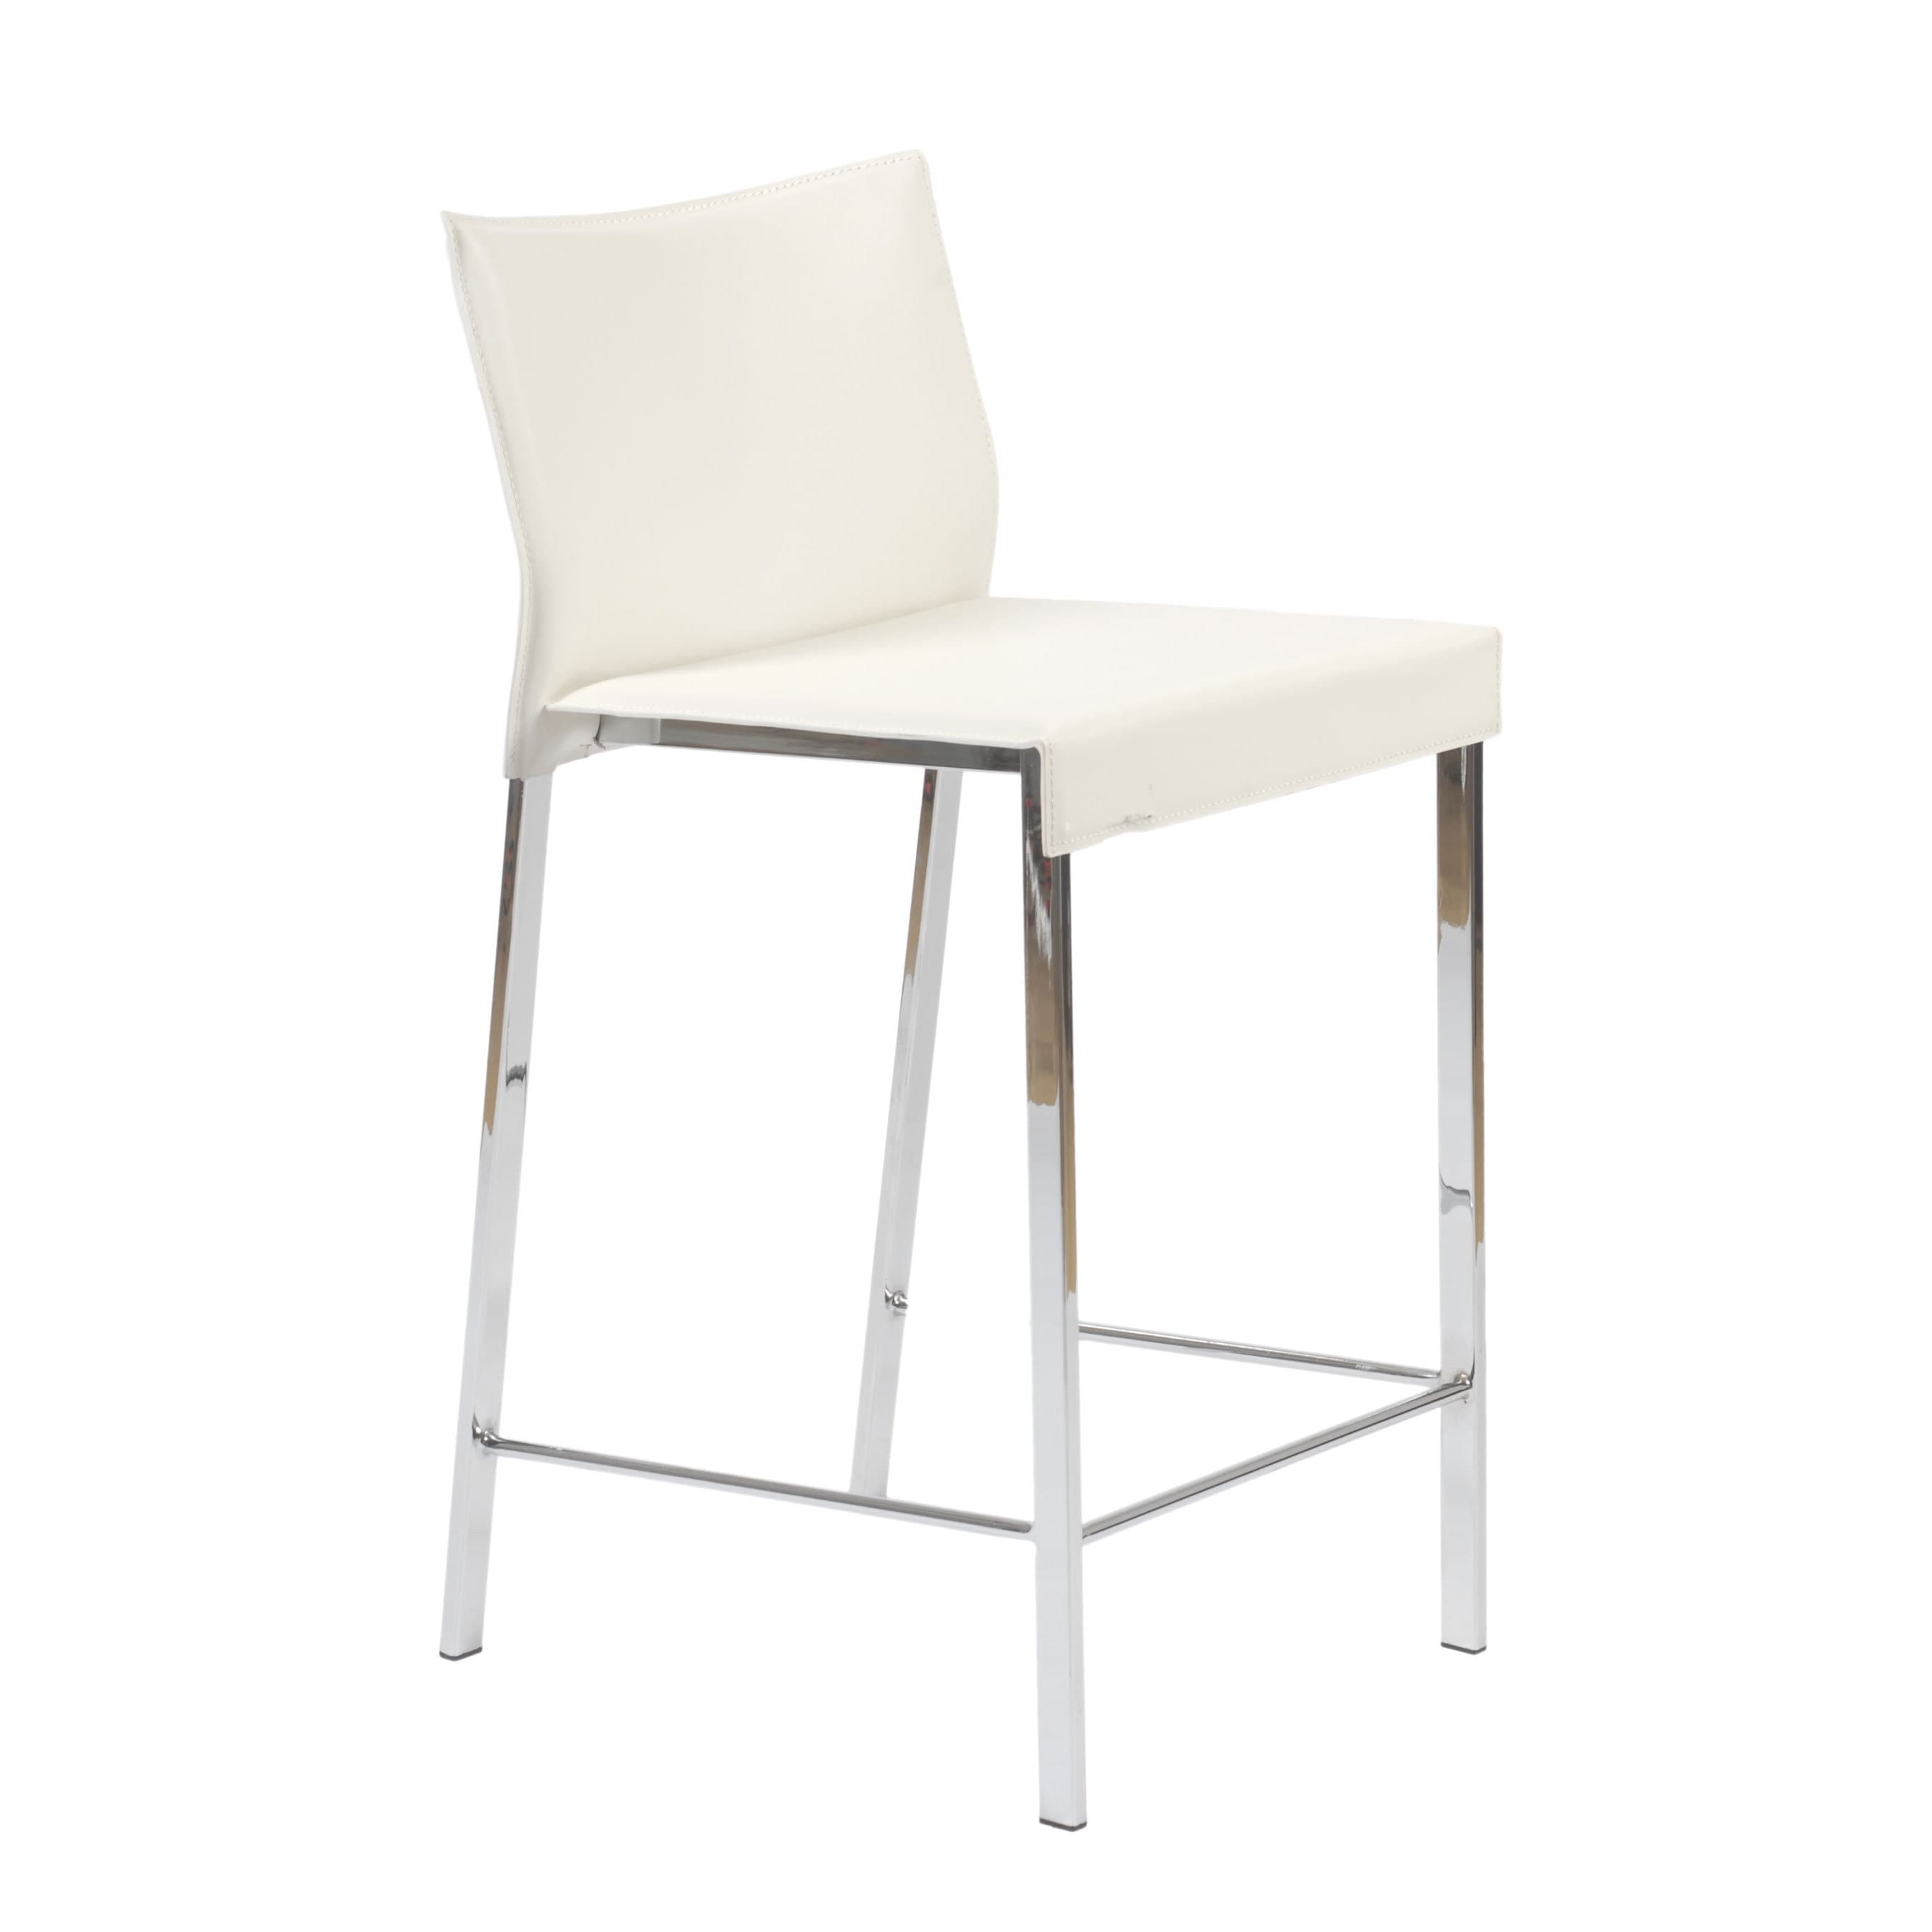 Shop riley 24 inch white leather chrome counter stool set of 2 free shipping today overstock com 10670326